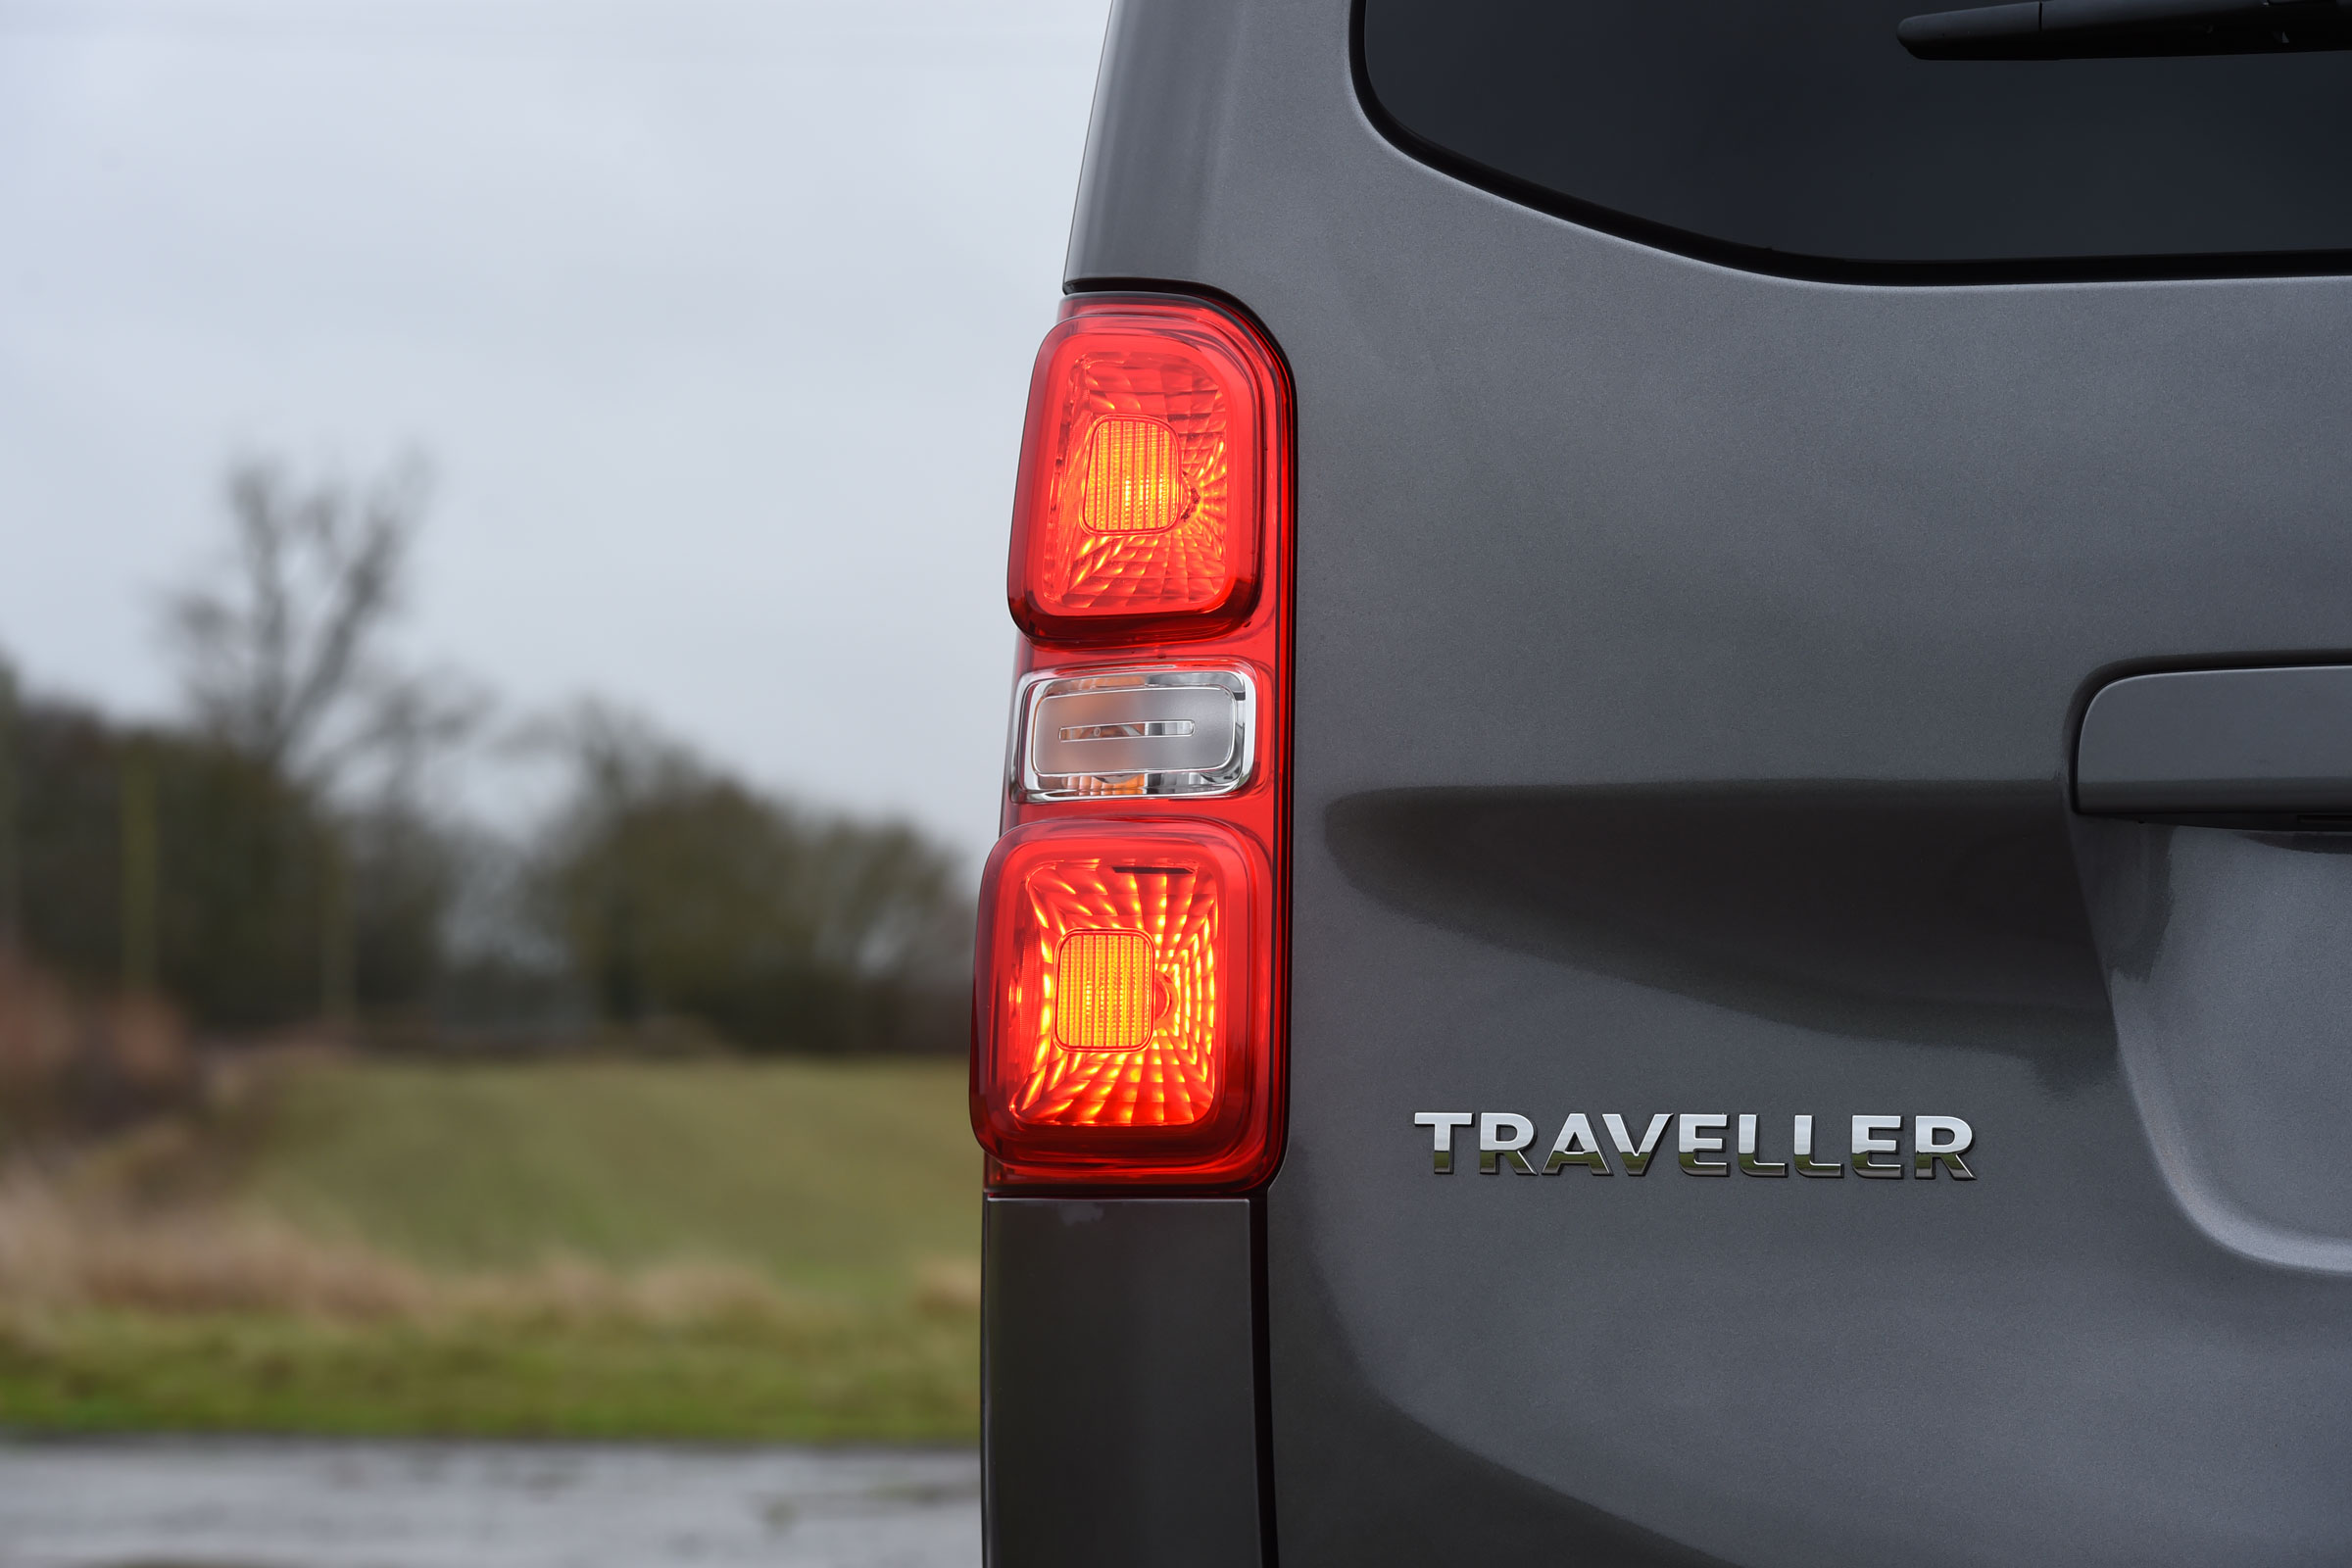 2017 Peugeot Traveller Allure Exterior View Taillight (Photo 5 of 13)